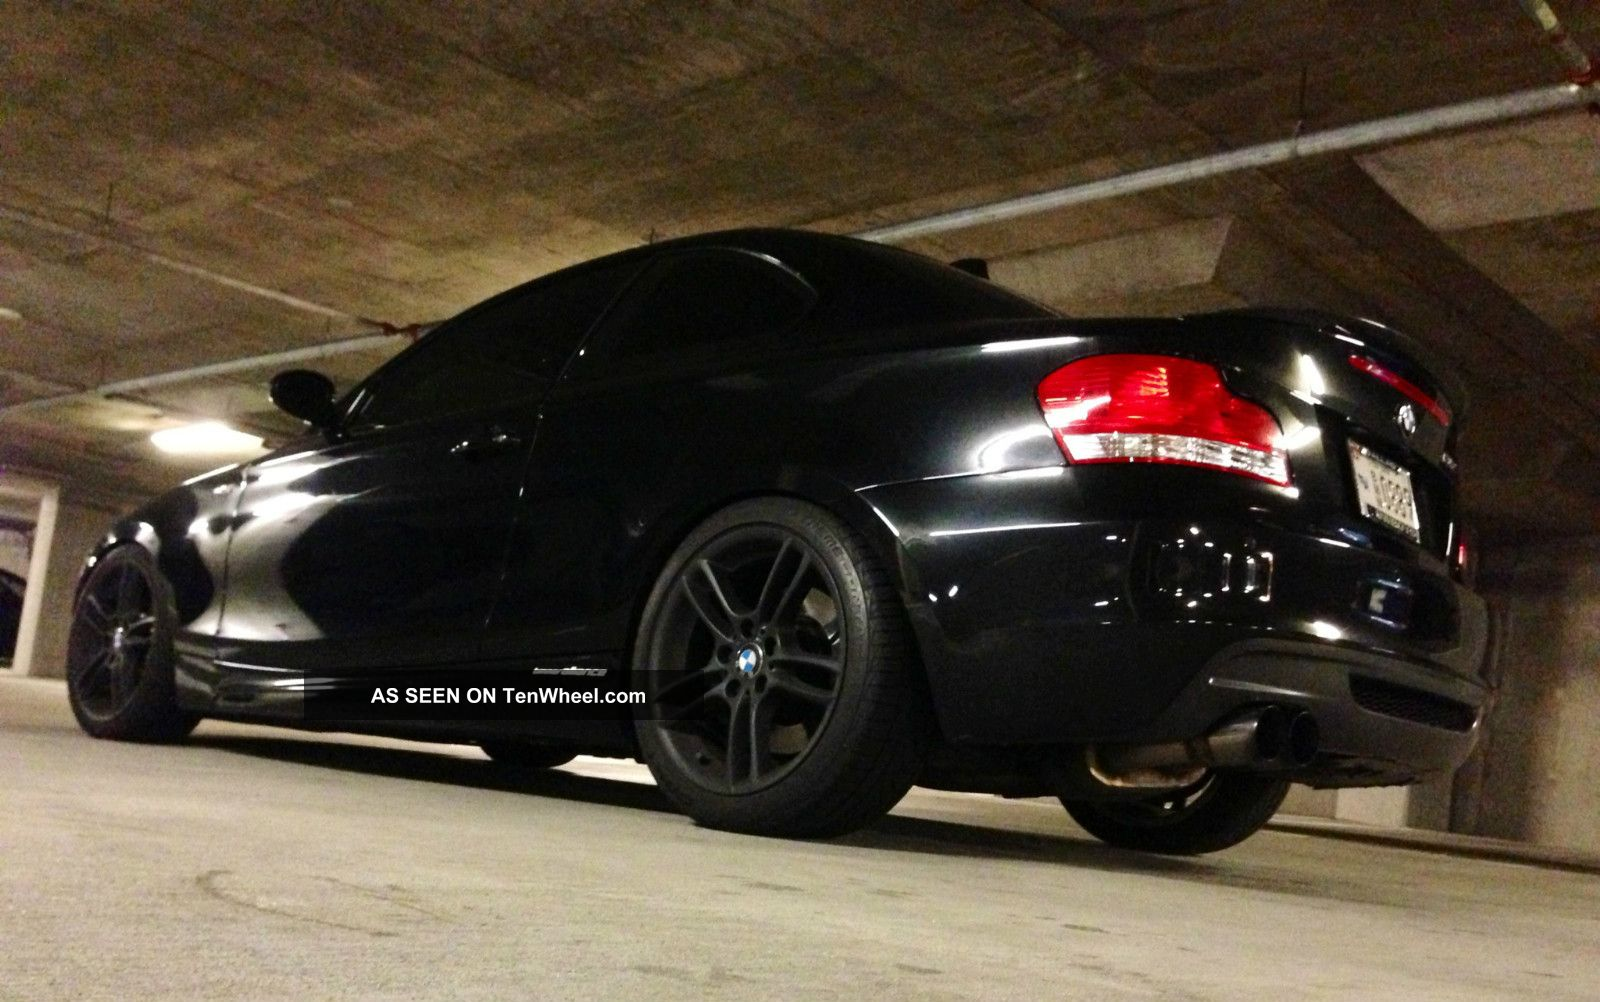 2009 Bmw 135i Heavily Modded 1-Series photo